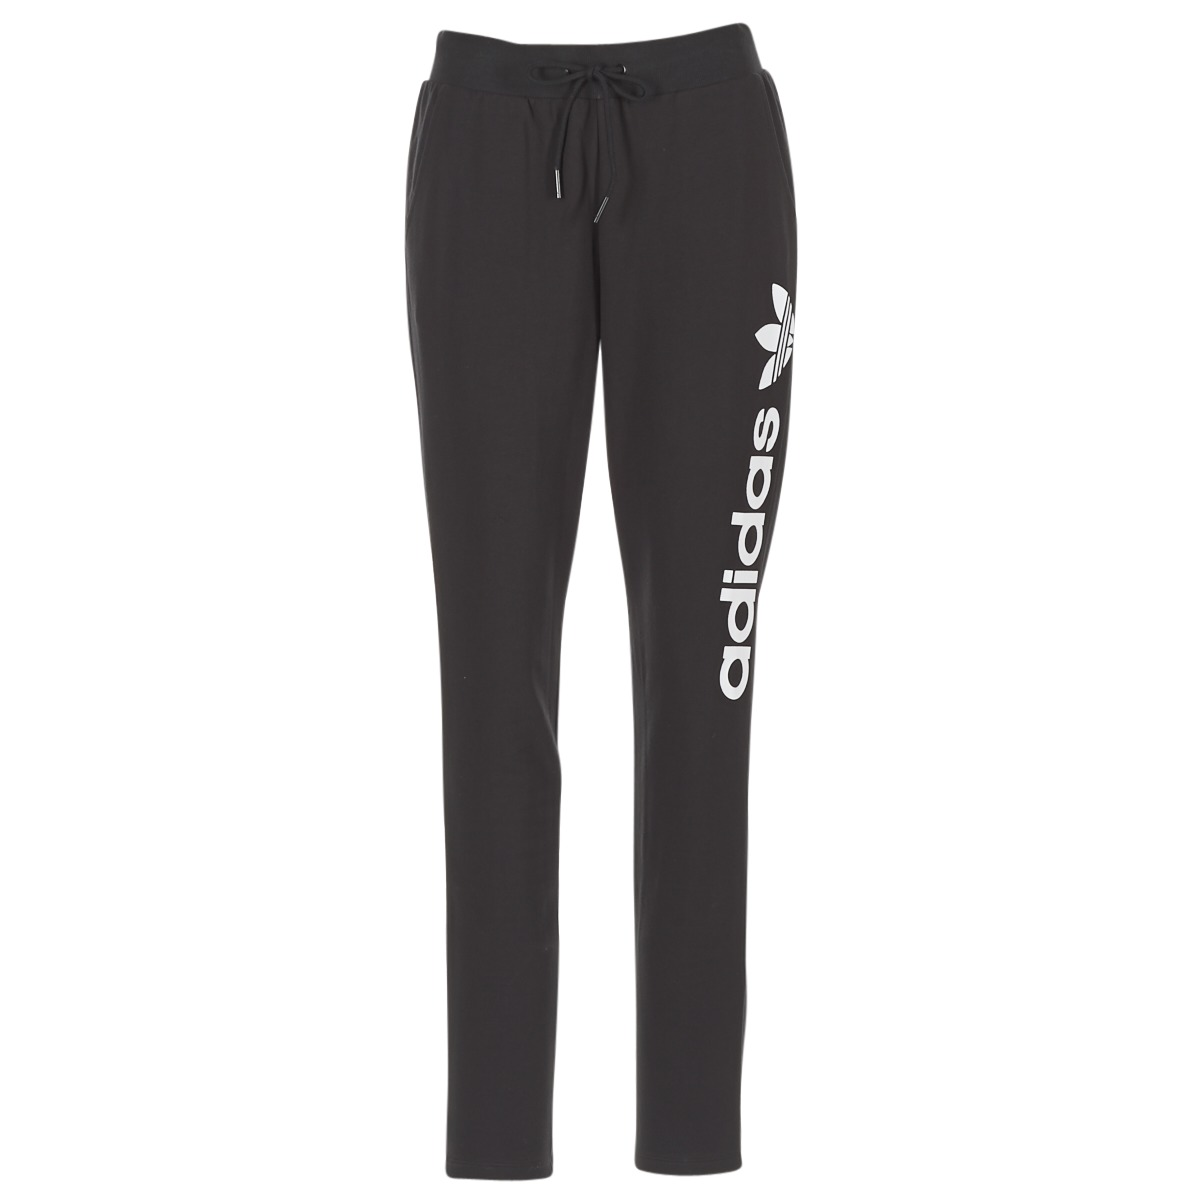 Joggings / Survêtements adidas Originals LIGHT LOGO TP Noir